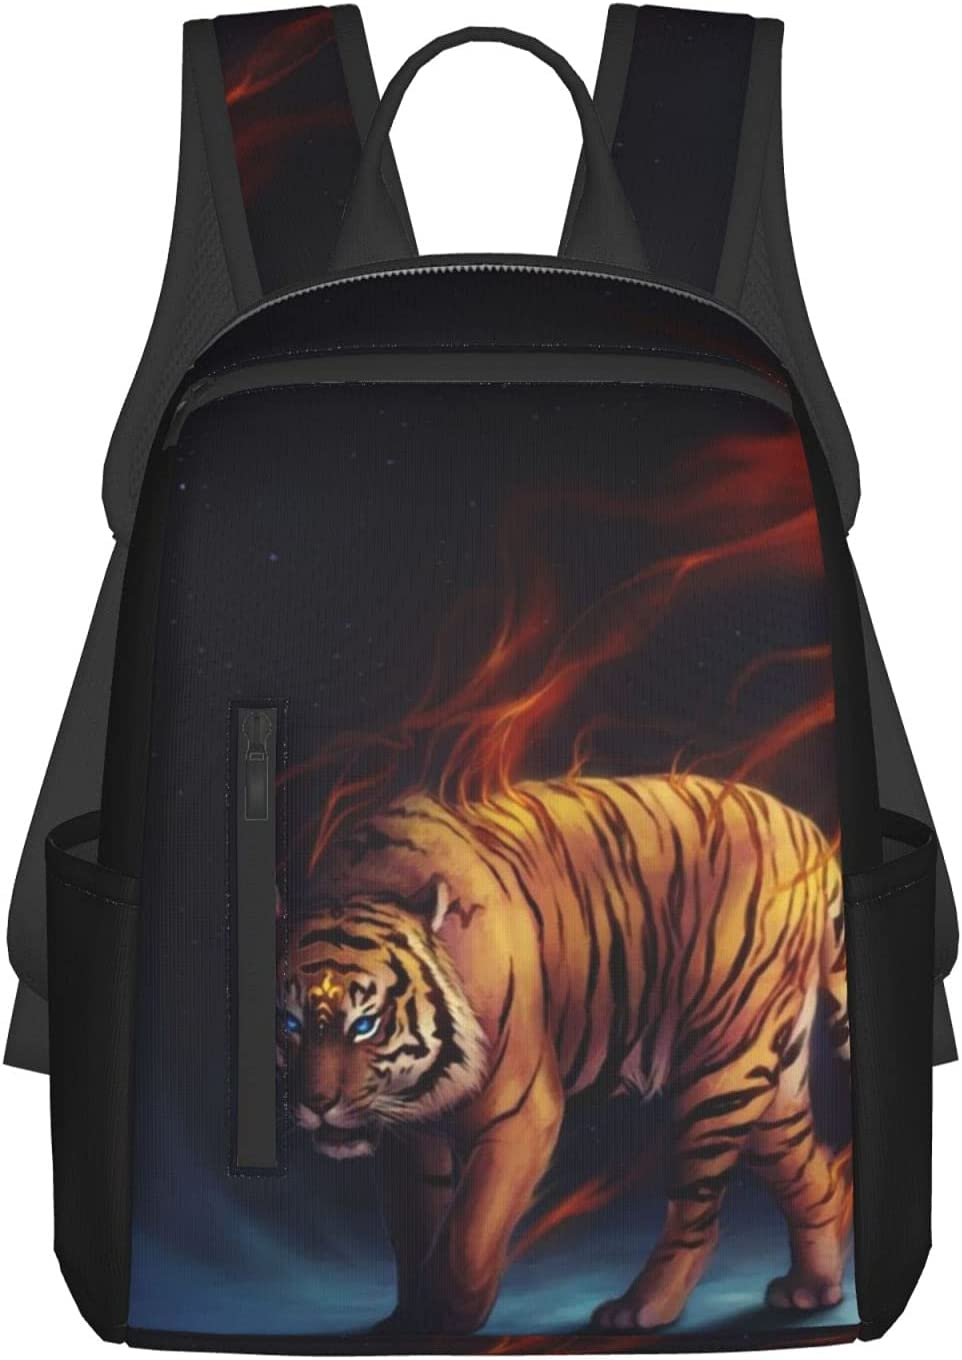 Gym Picnic Running Max 74% OFF Backpack Durable Manufacturer direct delivery Multipurpo Polyester Daypack